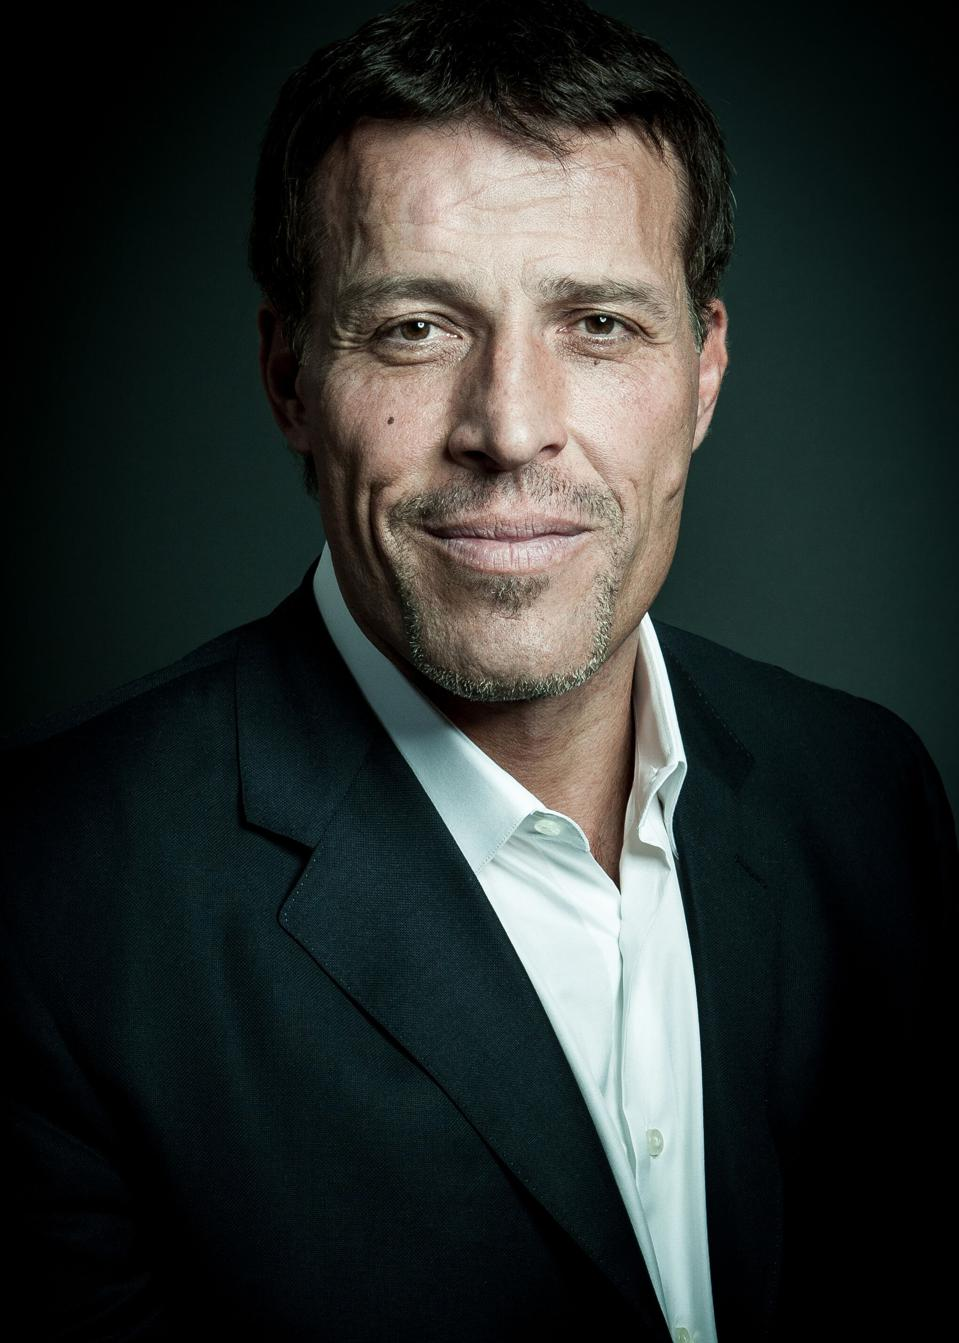 Guidance From A Guru: Tony Robbins' Tips For A Successful Career